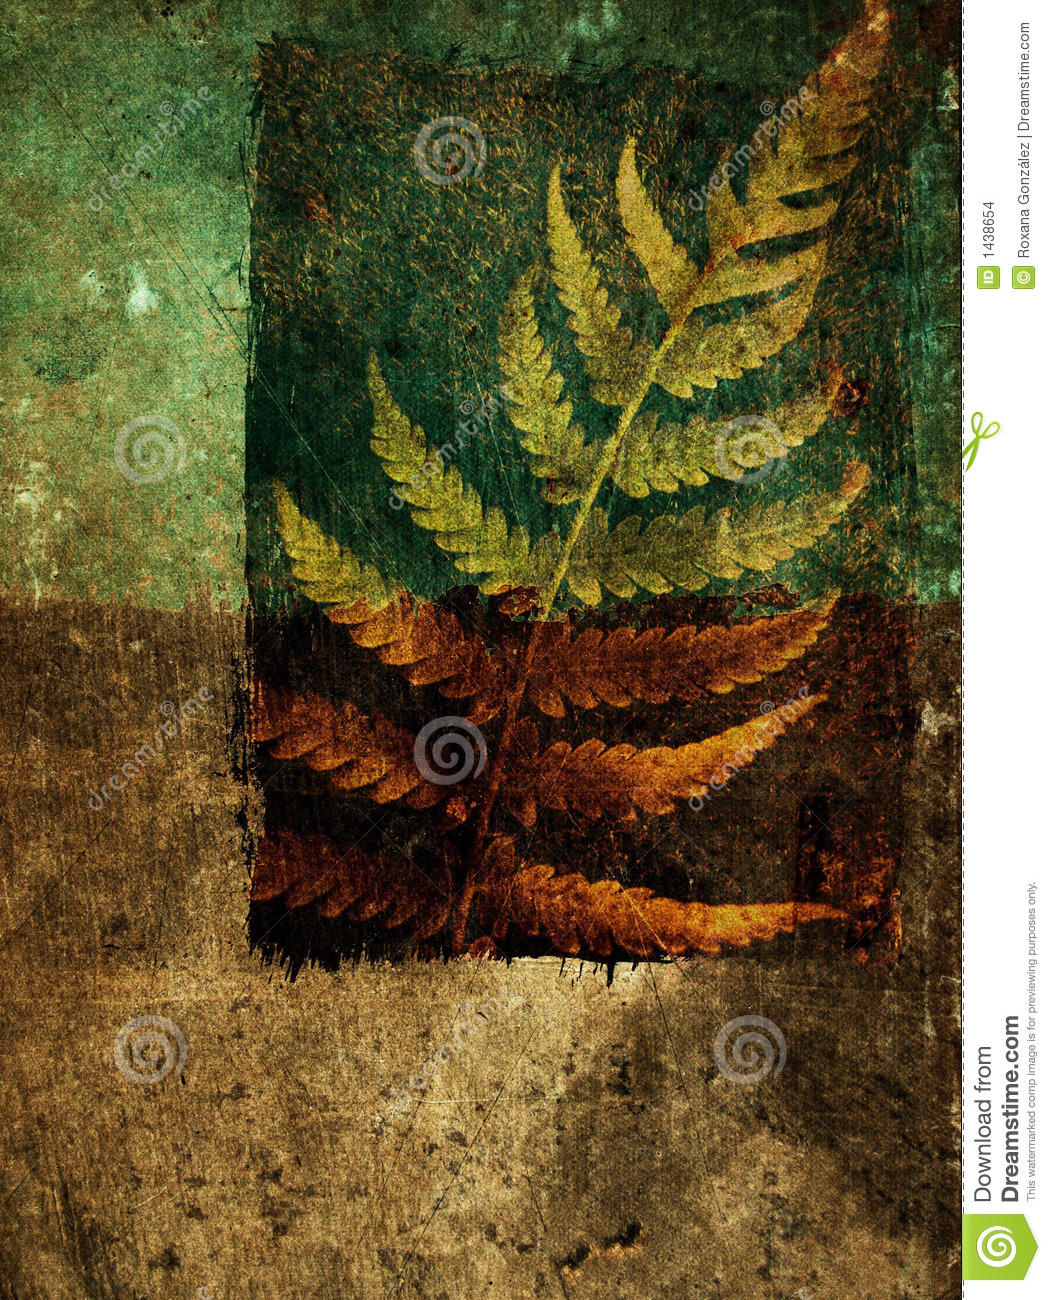 Grunge abstract background with fern leaf